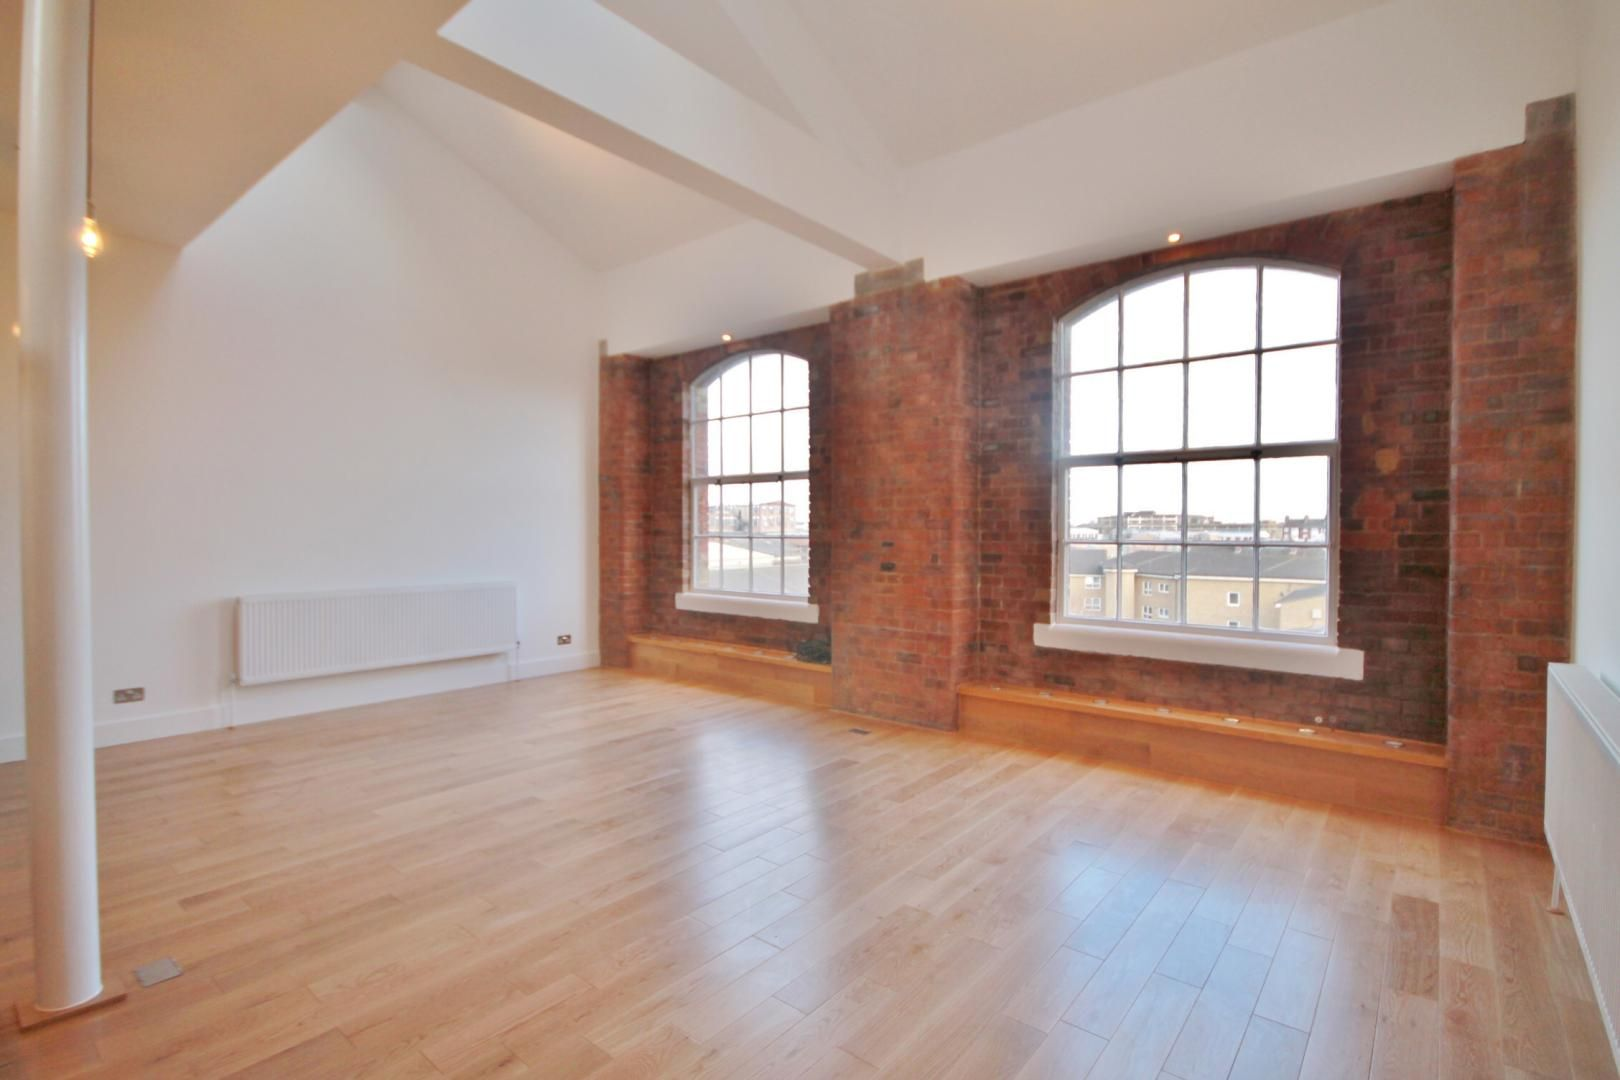 2 bed flat to rent in Morris Road, E14